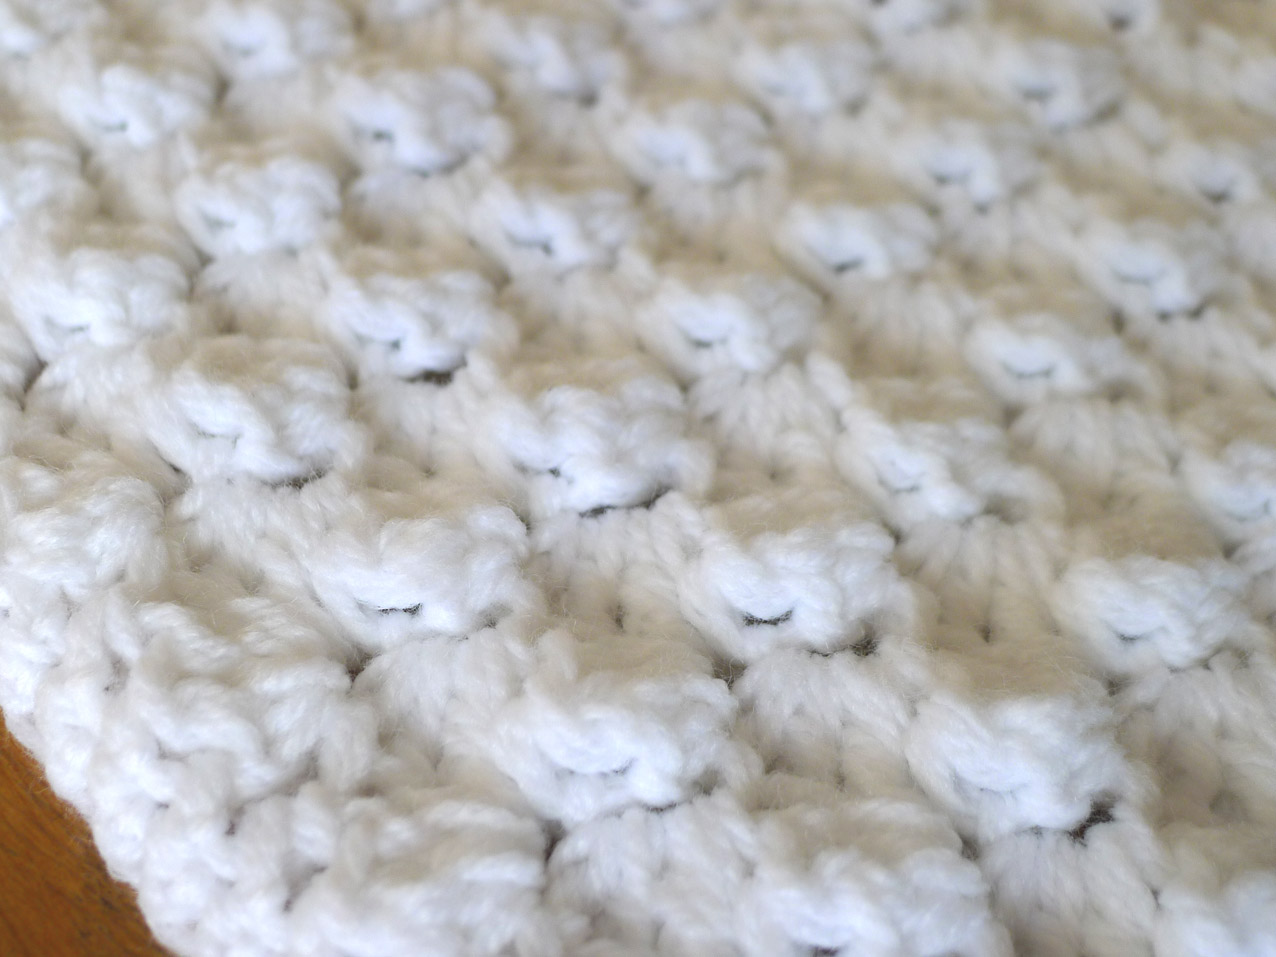 Crochet Stitches With No Holes : Cotton Candy Baby Blanket - DIY crochet